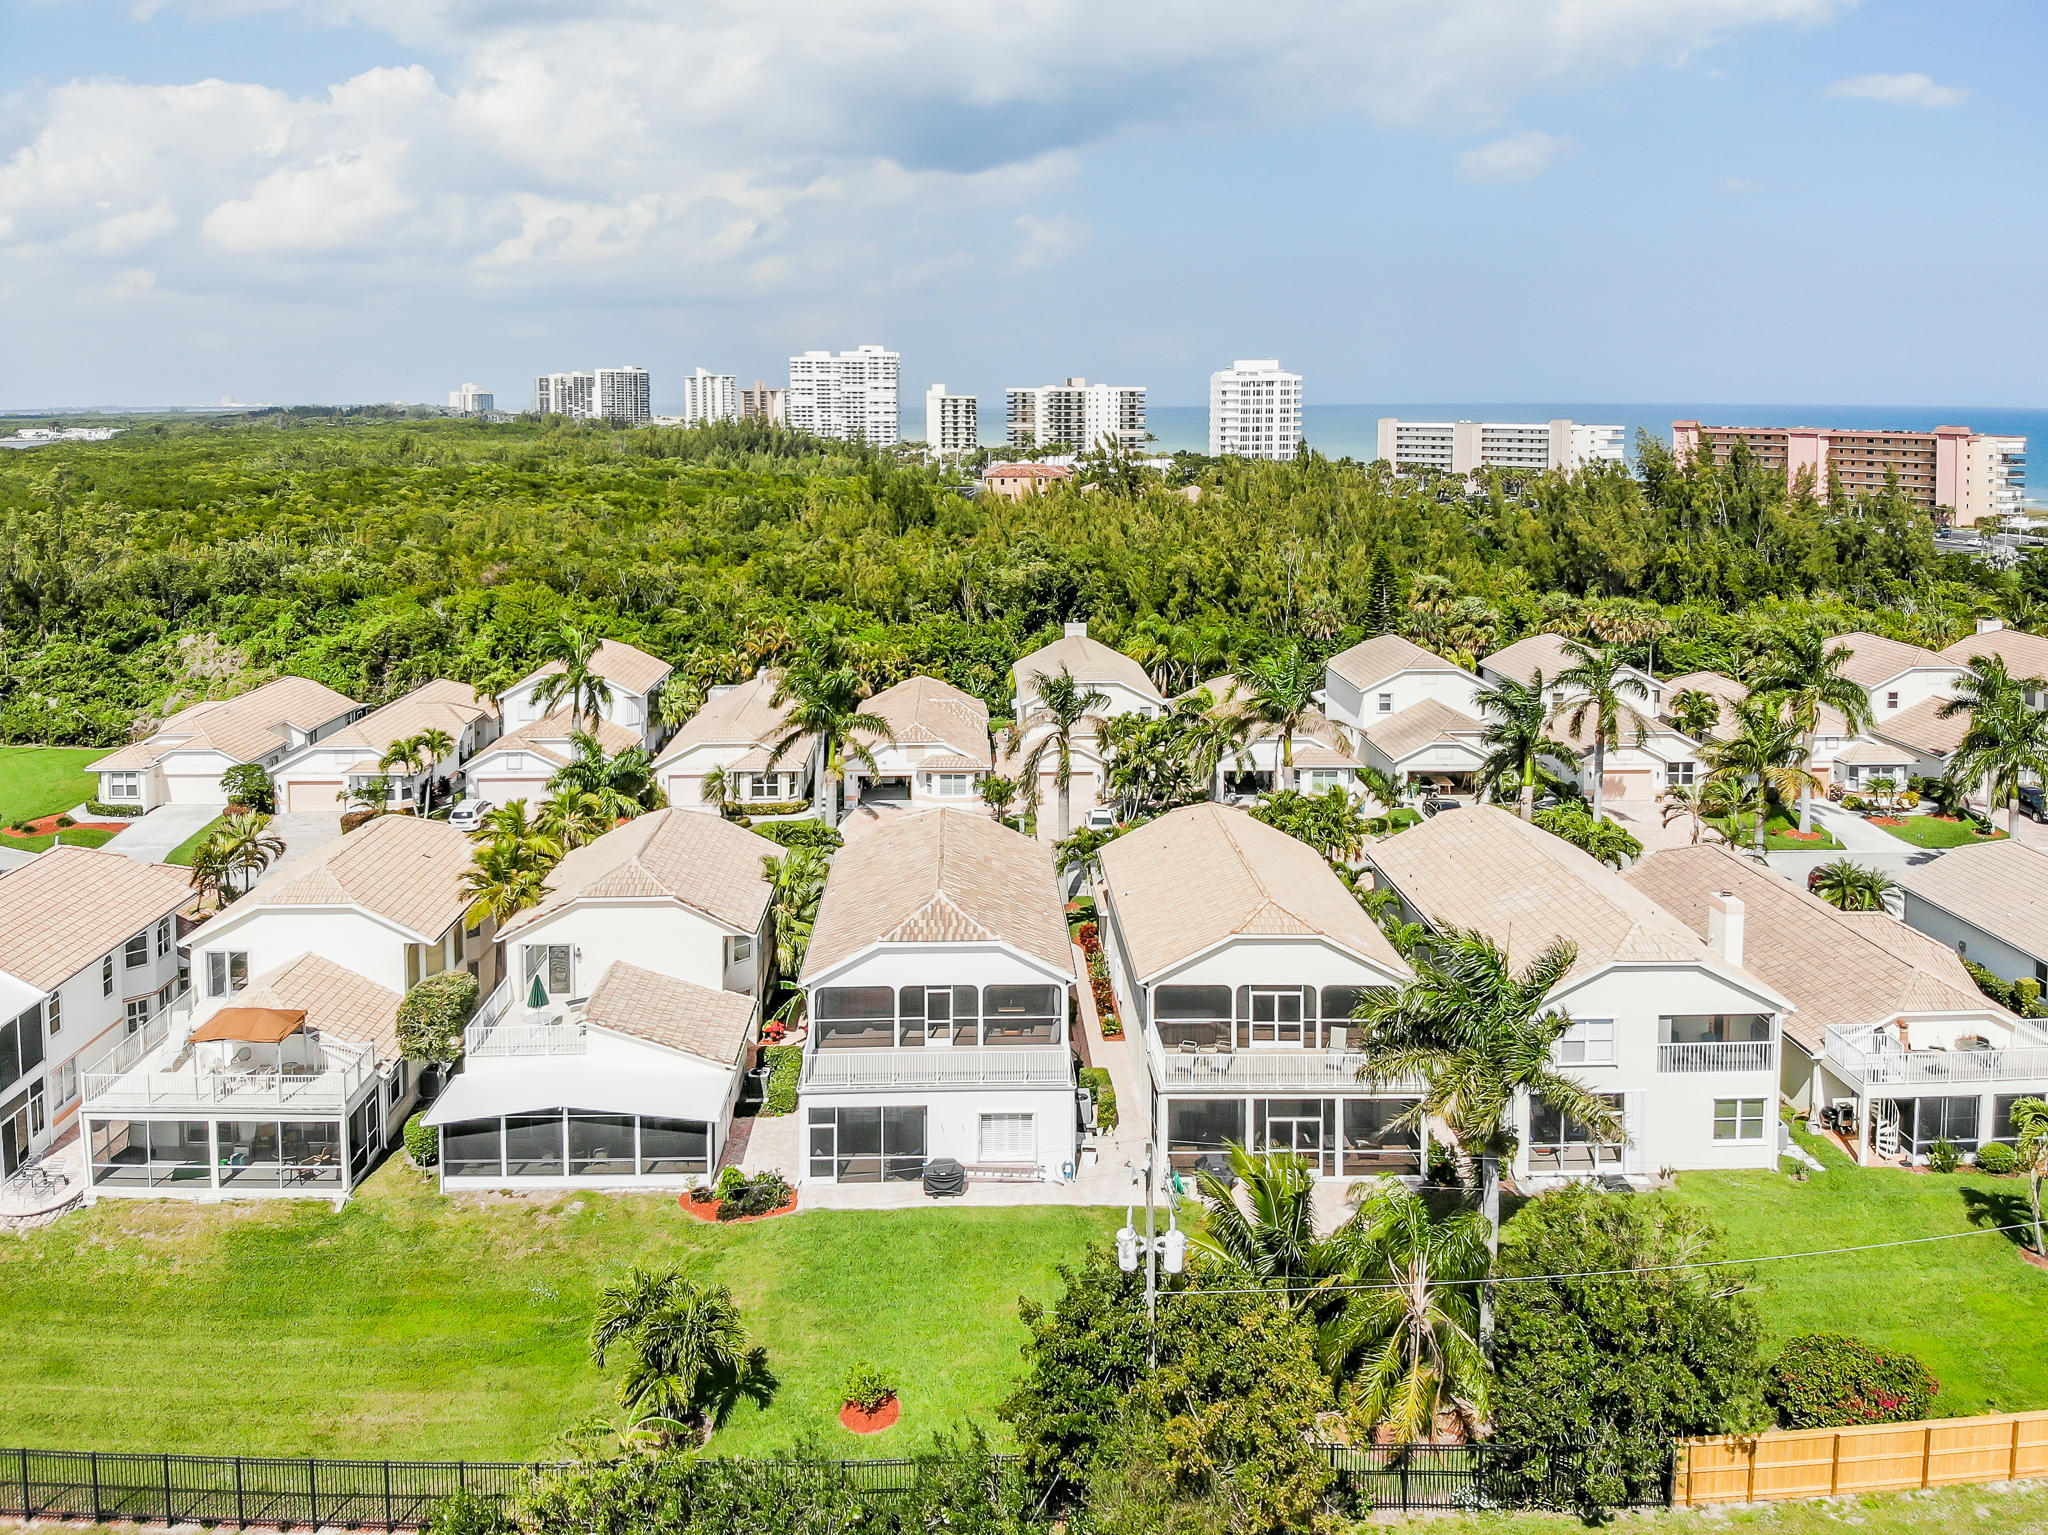 BAY TREE HOMES FOR SALE